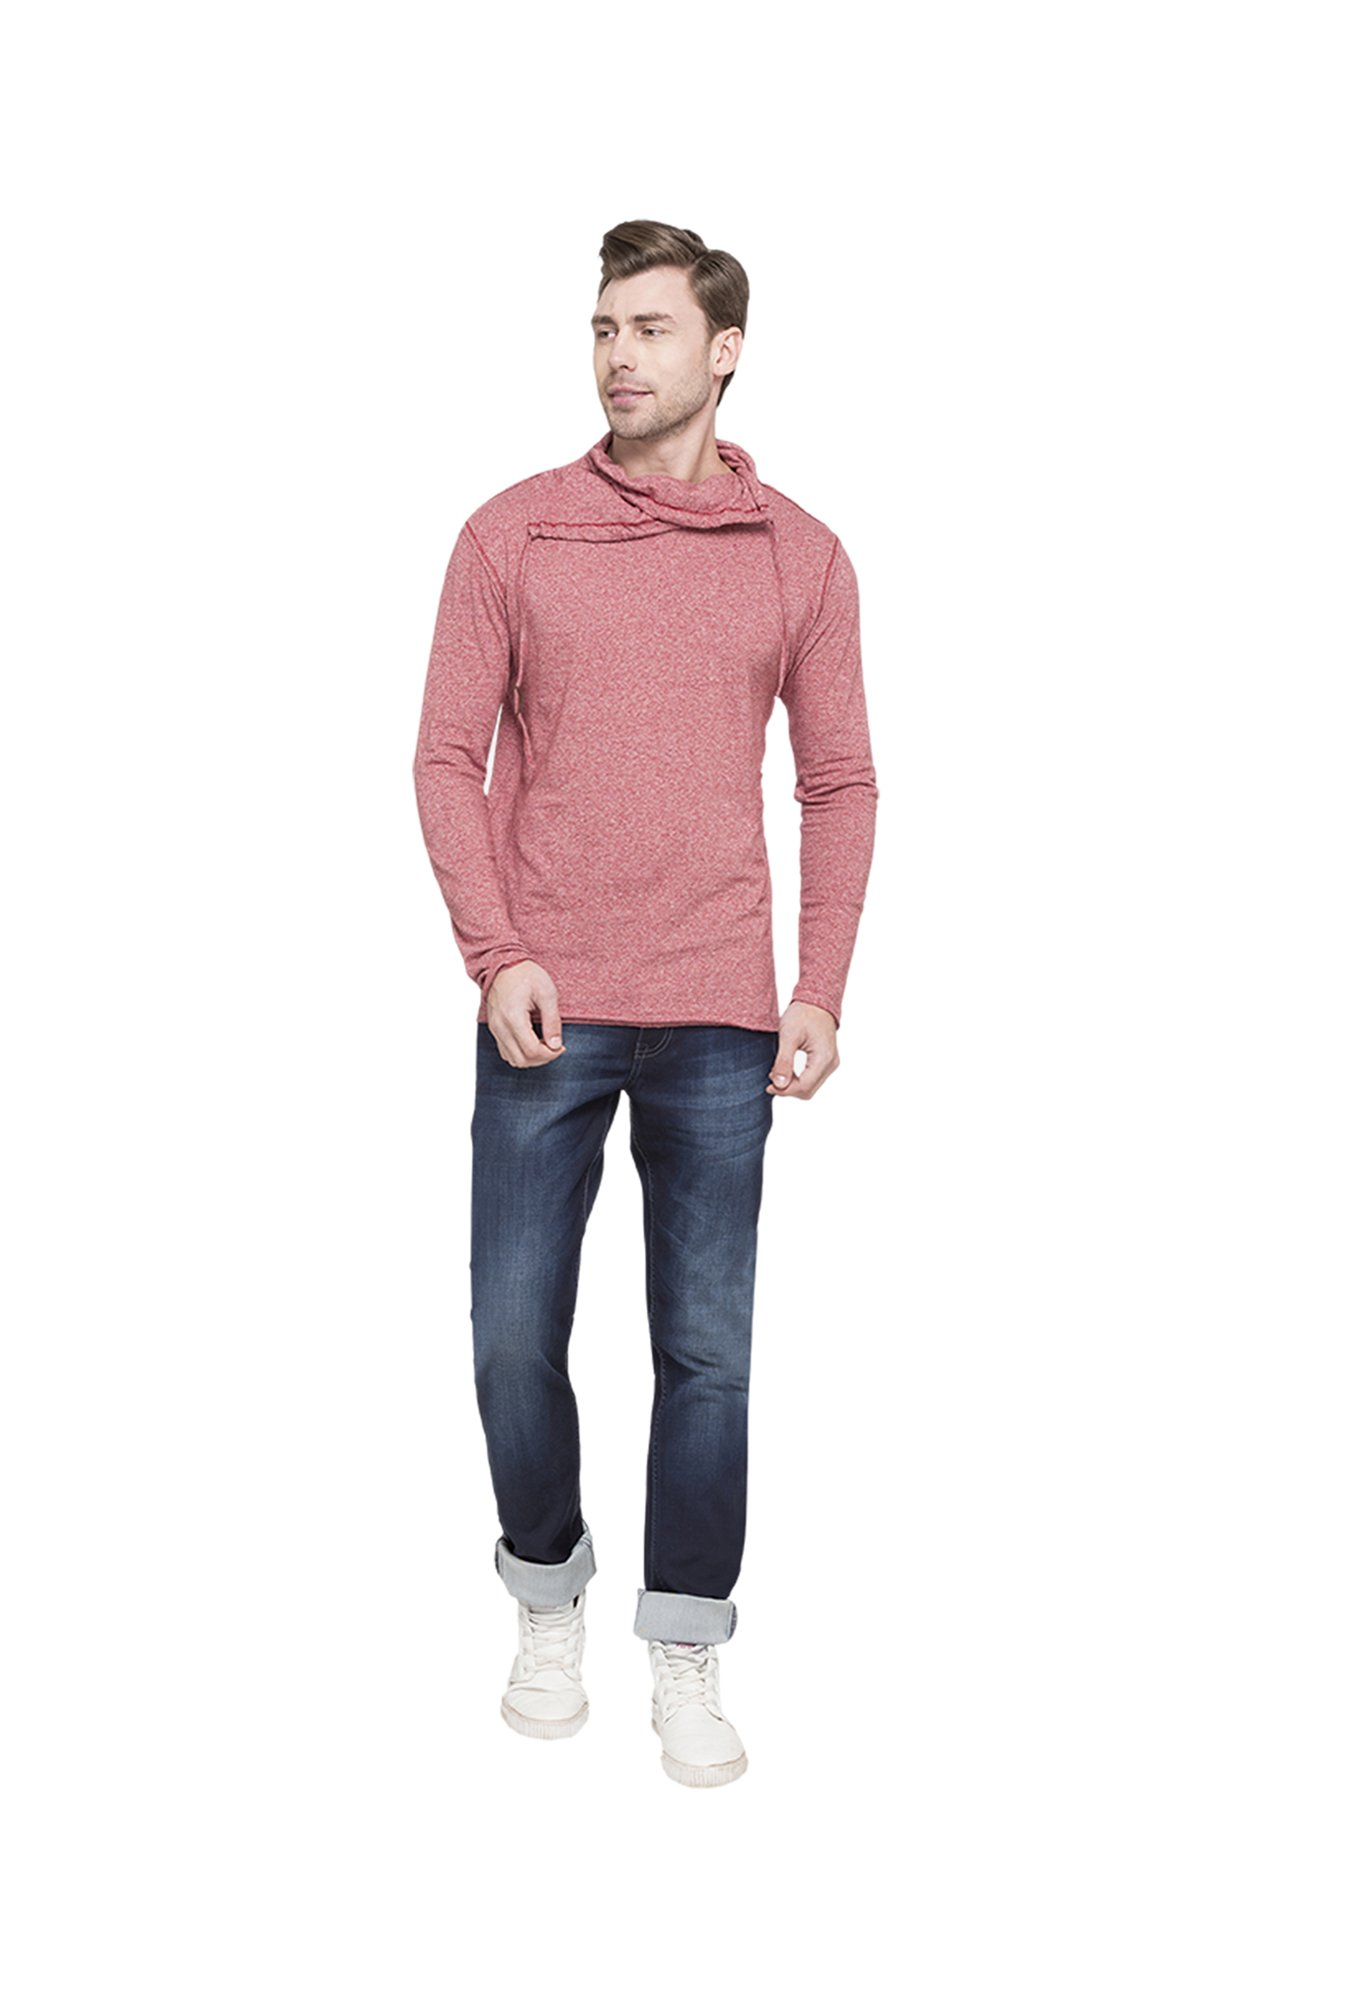 Globus Red Textured T-Shirt